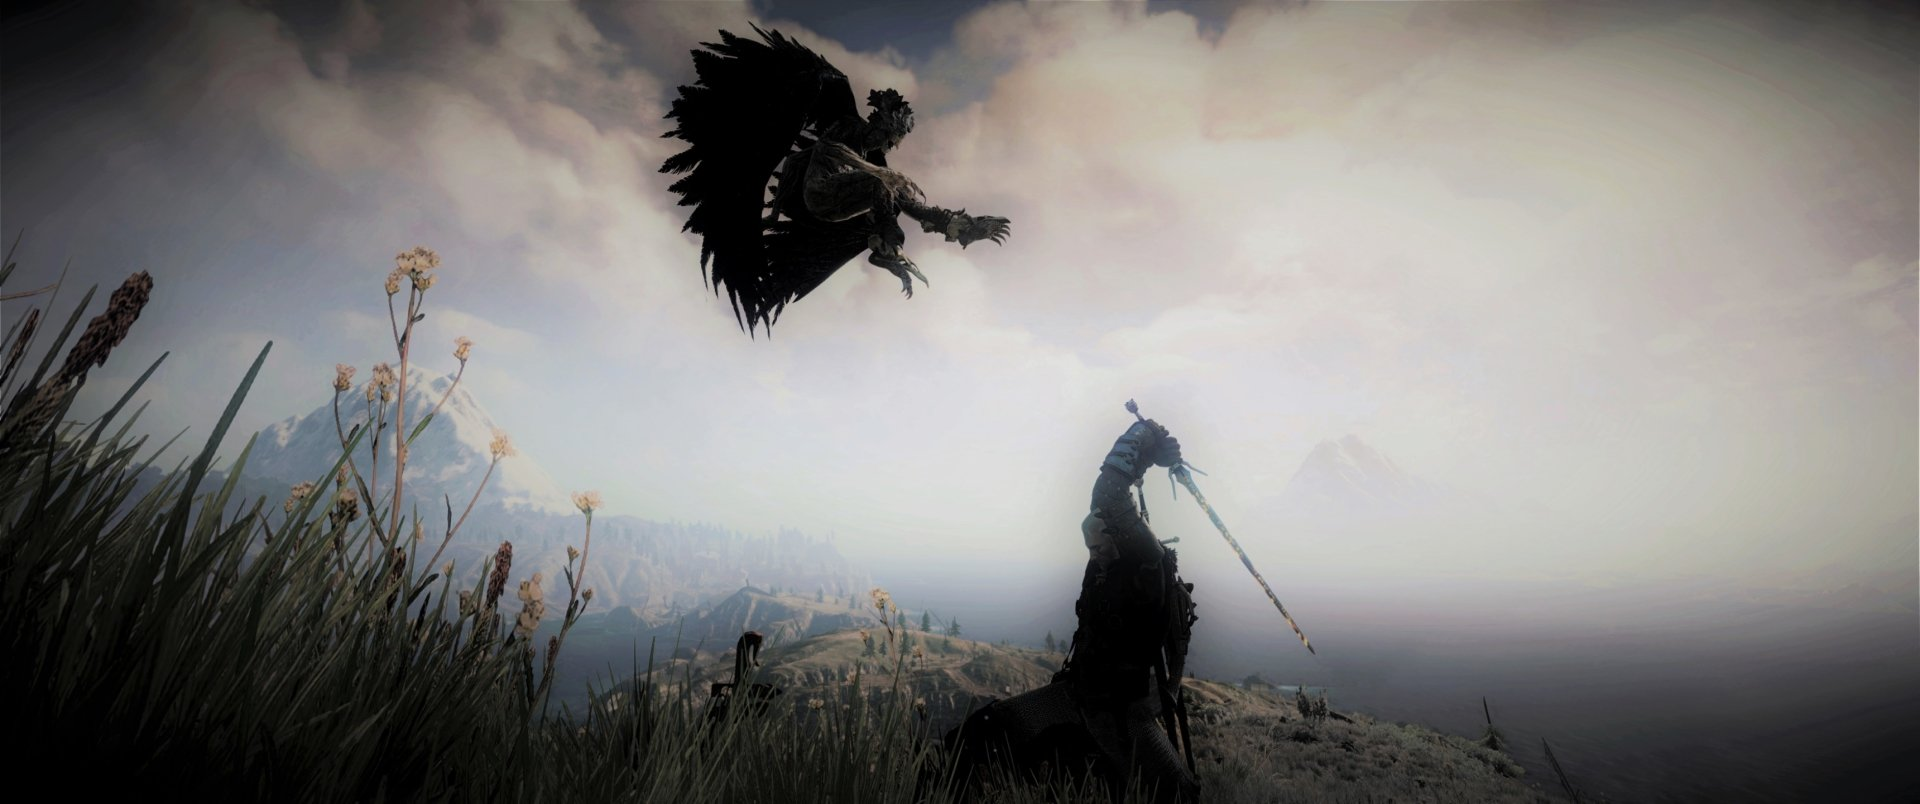 Video Game - The Witcher 3: Wild Hunt  Fantasy Wallpaper